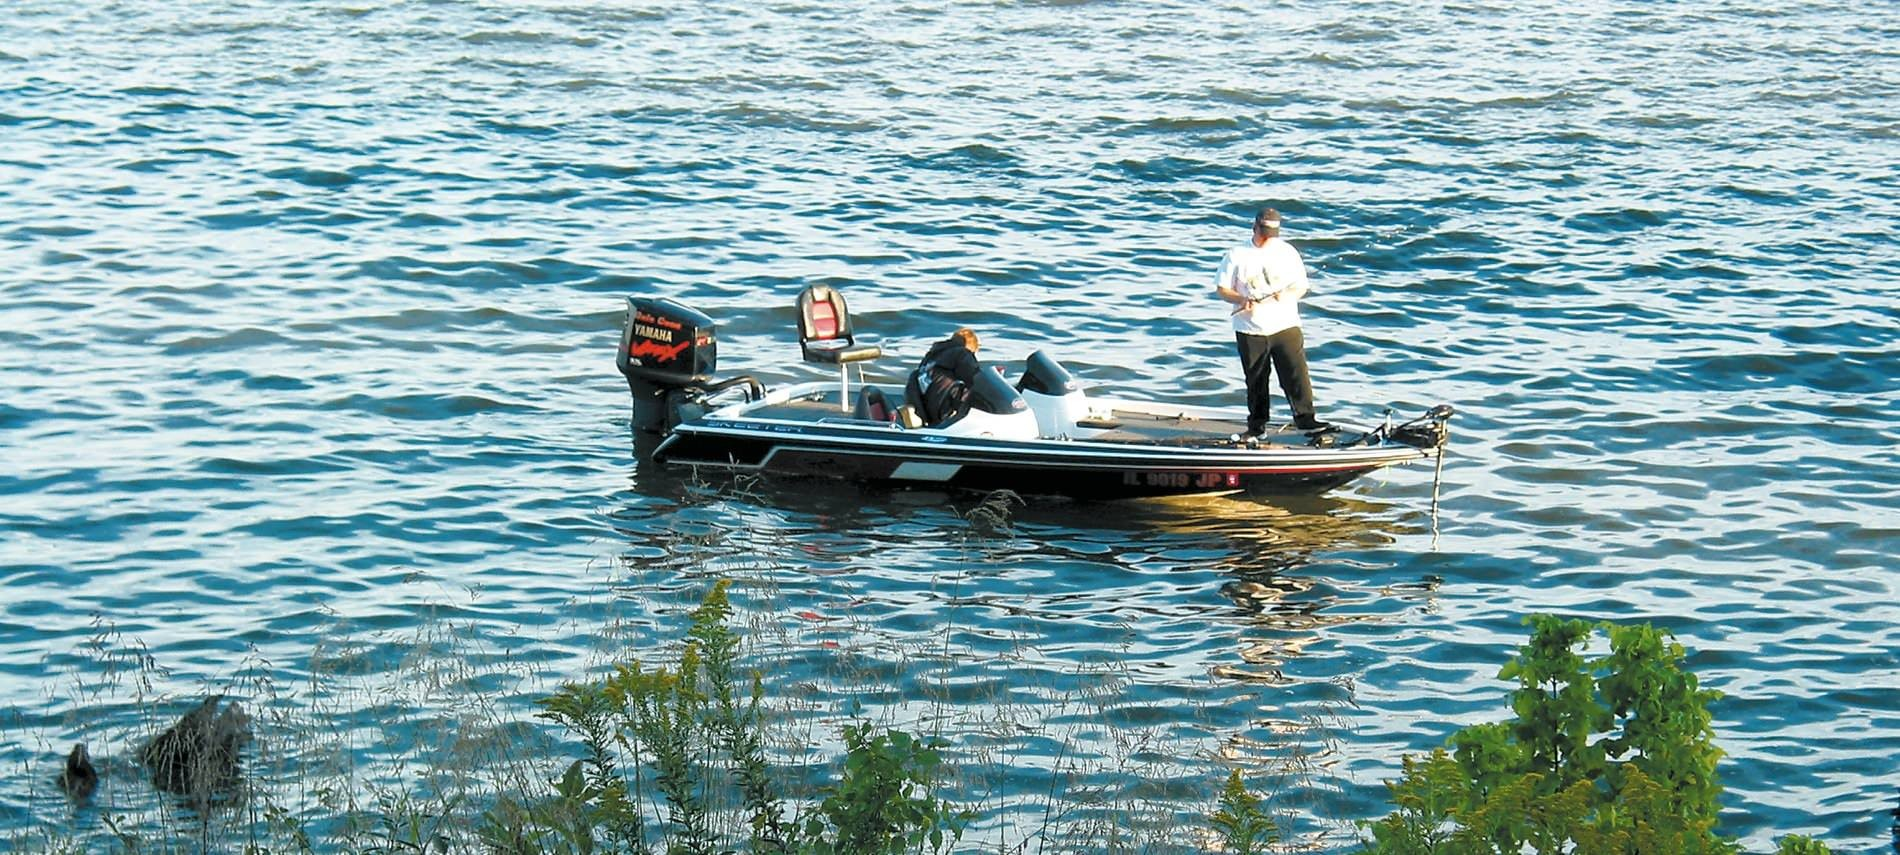 Man with white shirt and jeans standing on motor boat on choppy ocean waters getting ready to fish.